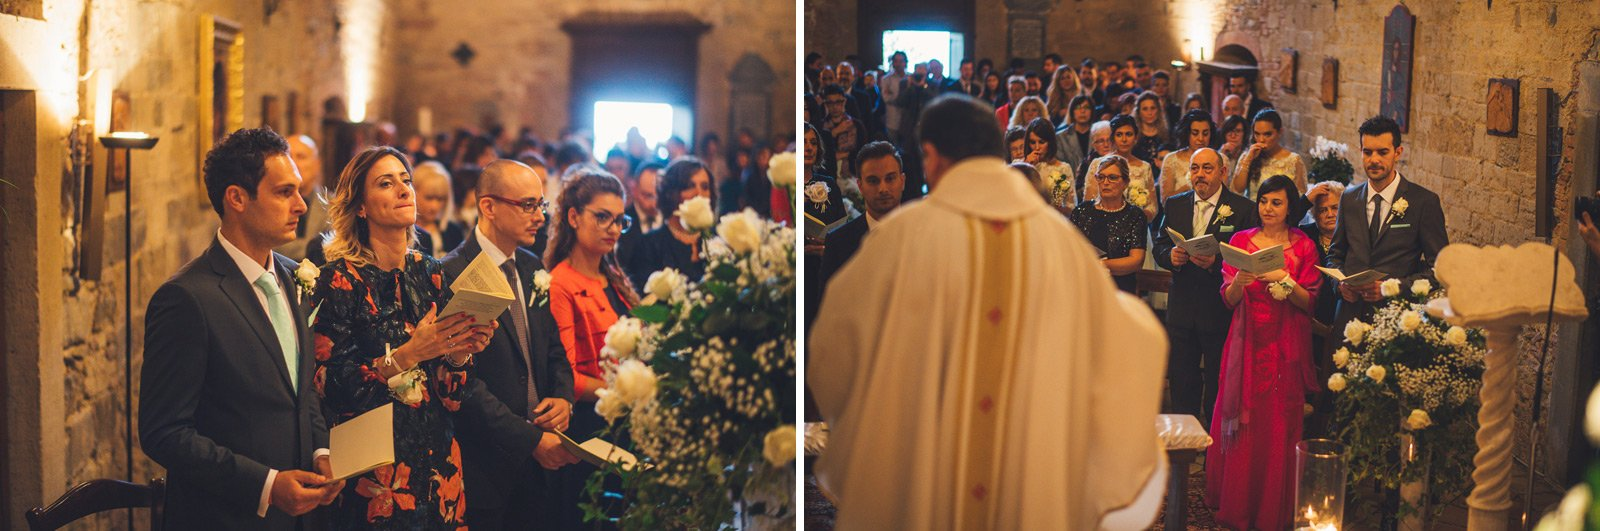 Wedding in Florence, Wedding in Florence | Palazzo Borghese, Federico Pannacci, Federico Pannacci